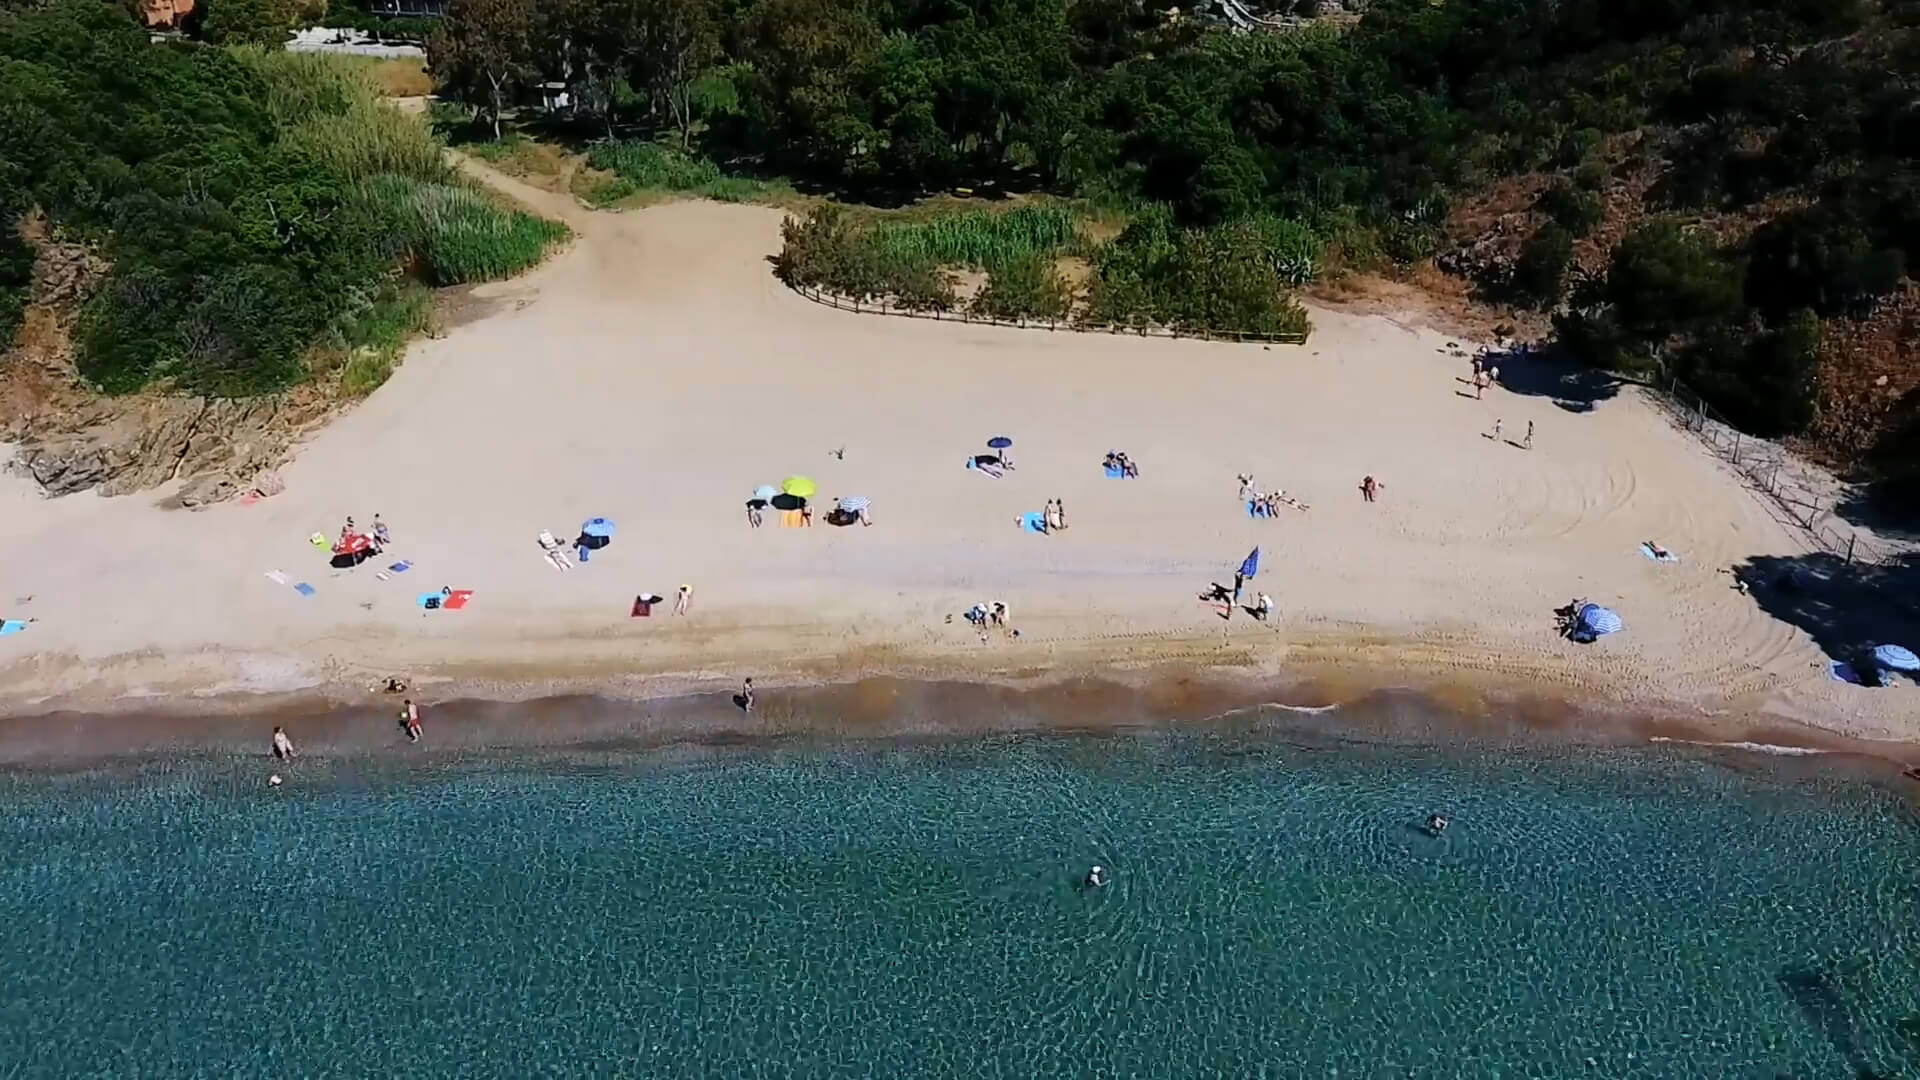 4* Campsite In Cavalaire In The Var By The Sea With Beach Access à Camping Var Avec Piscine